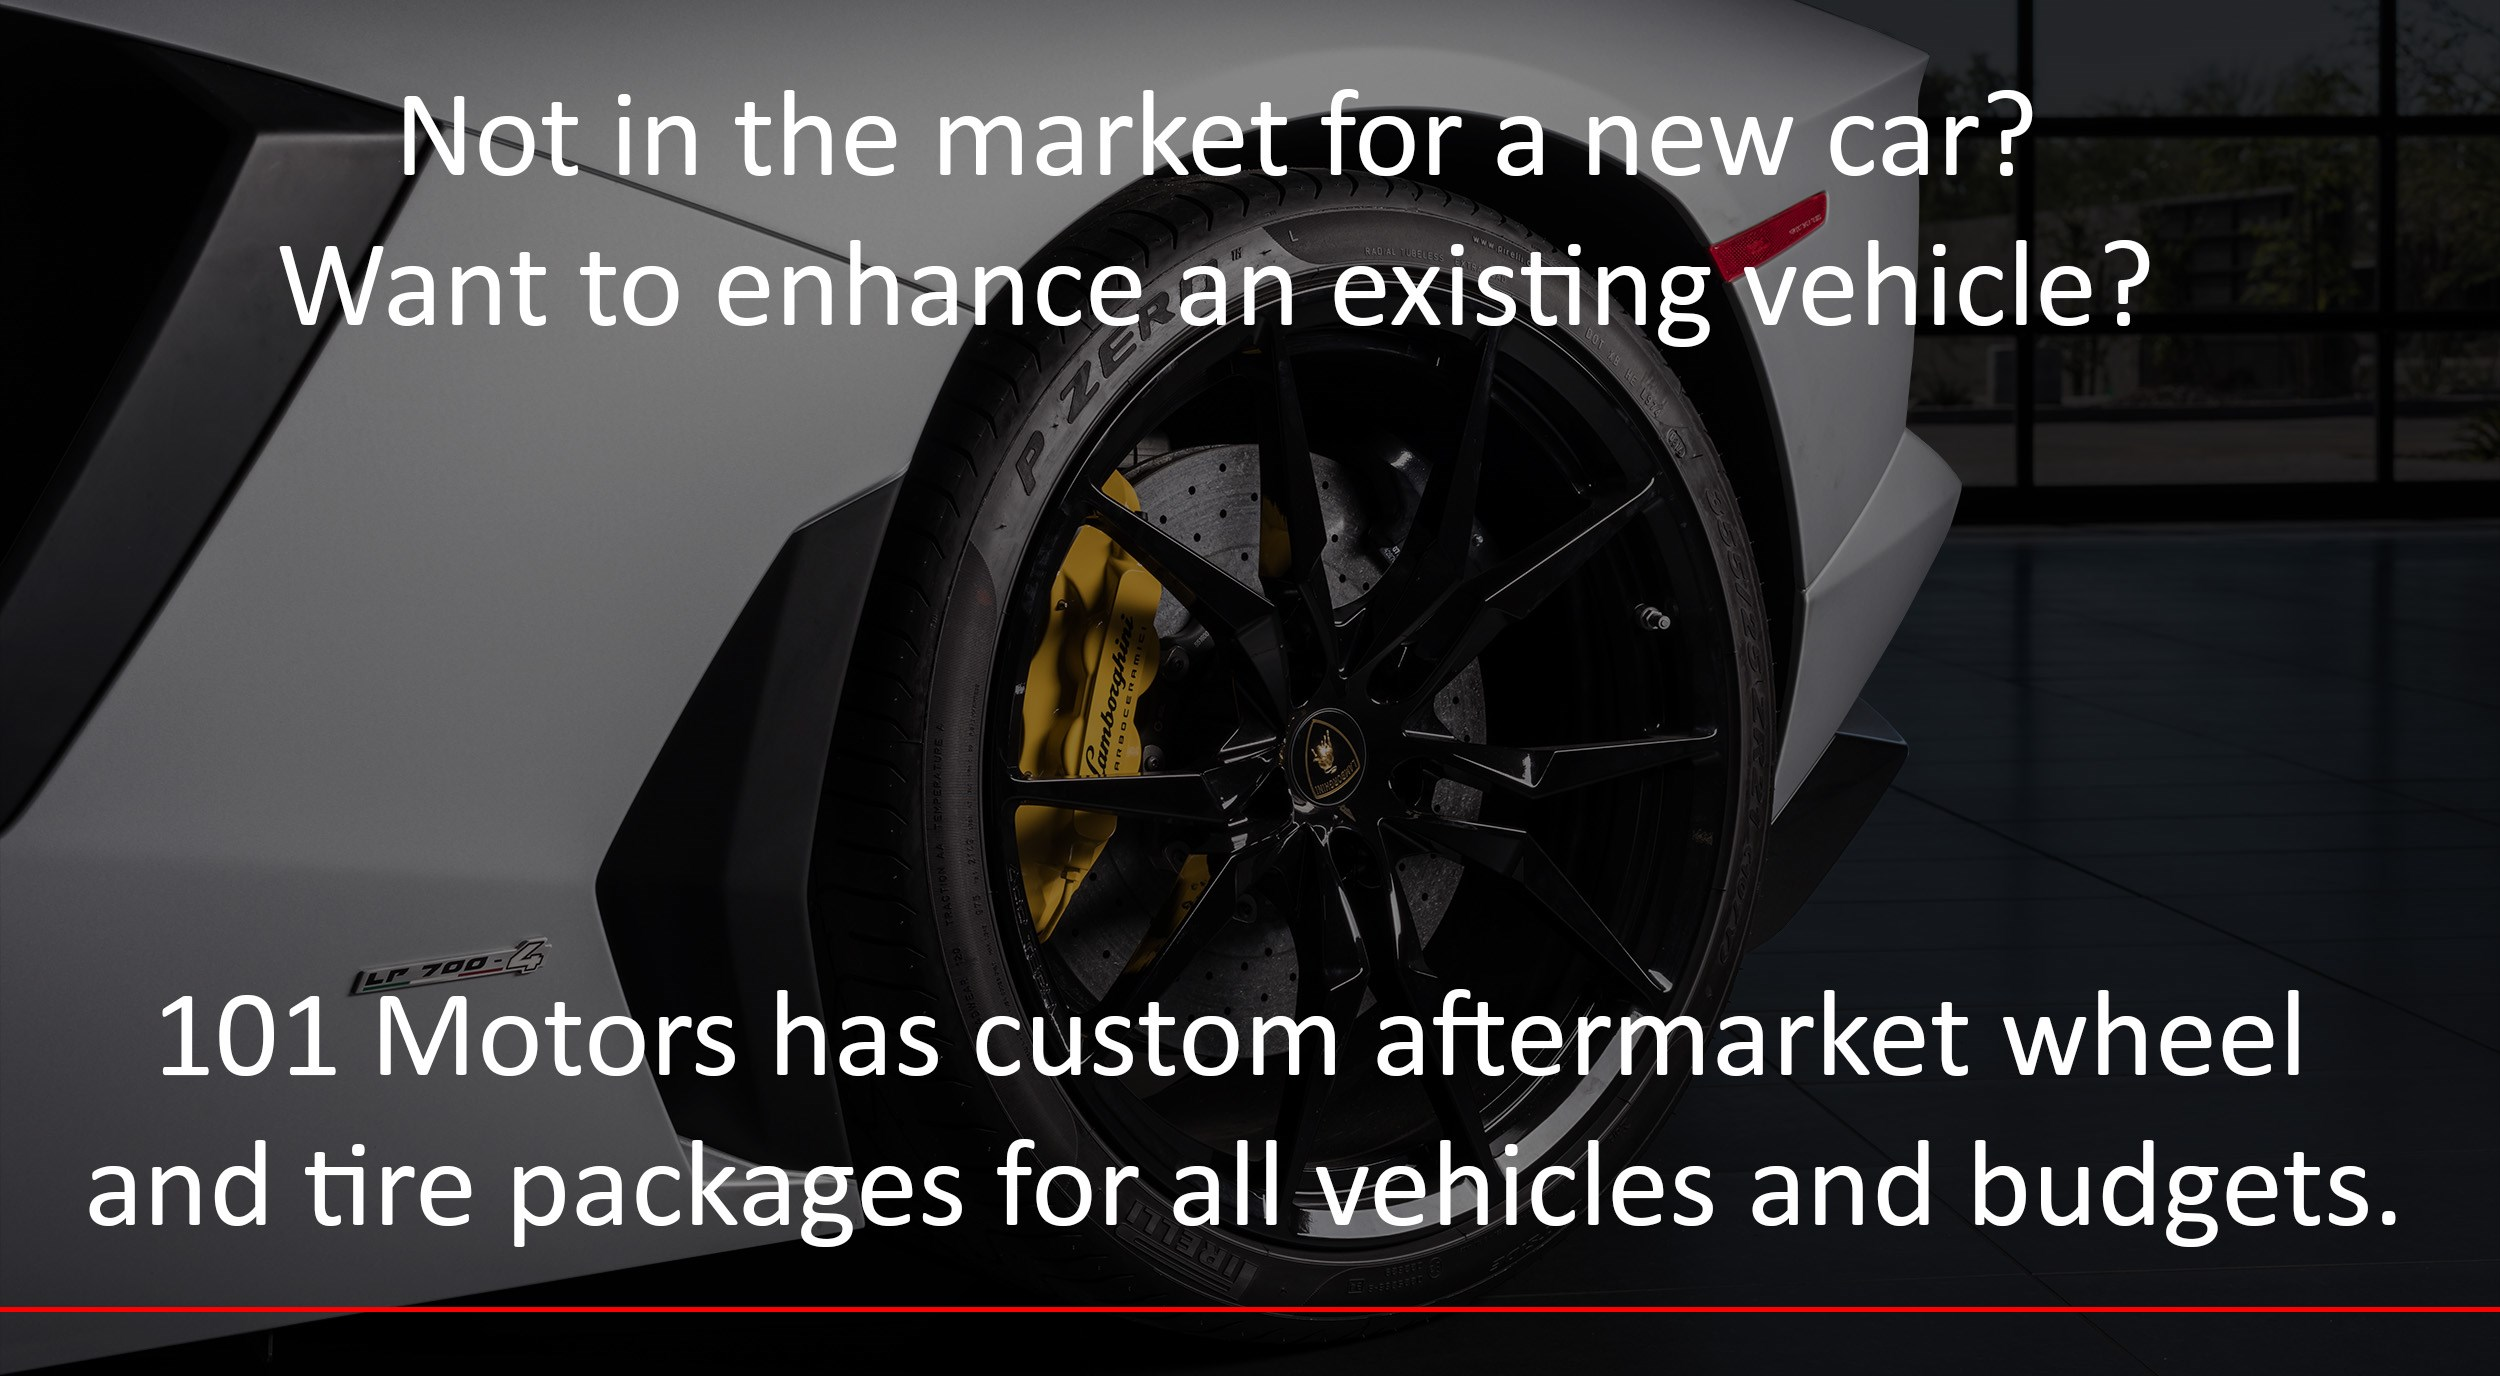 Not in the market for a new car? Want to enhance an existing vehicle? 101 Motors has custom aftermarket wheel and tire packages for all vehicles and budgets.